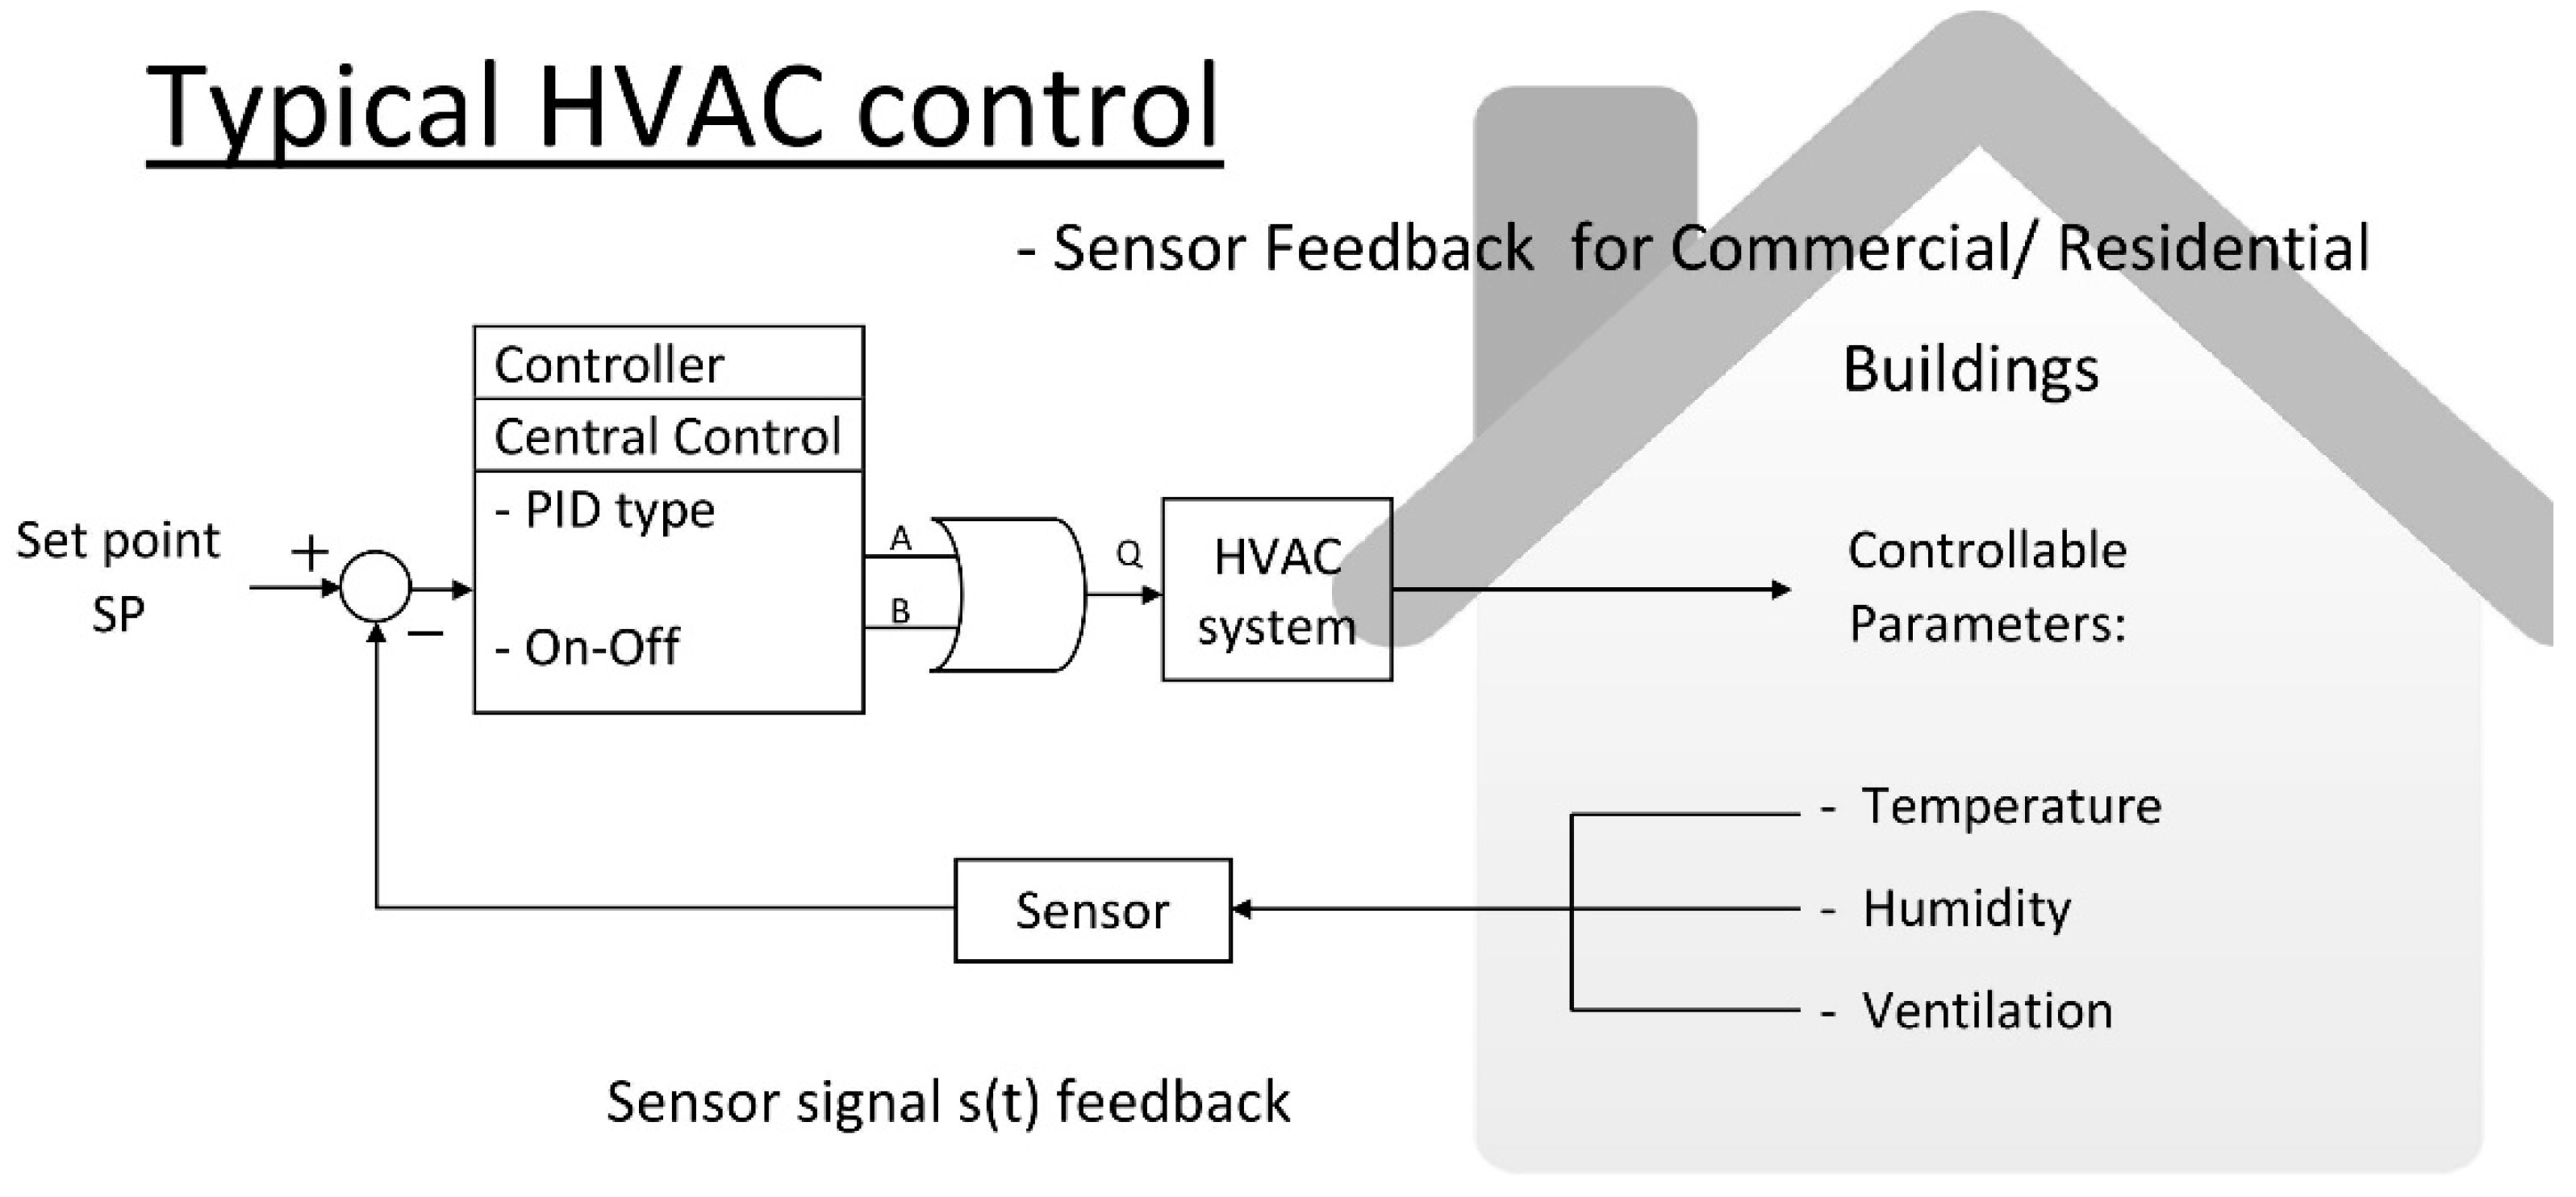 Sensors Free Full Text Artificial Intelligence Assisted Heating Ventilation And Air Conditioning Control And The Unmet Demand For Sensors Part 1 Problem Formulation And The Hypothesis Html